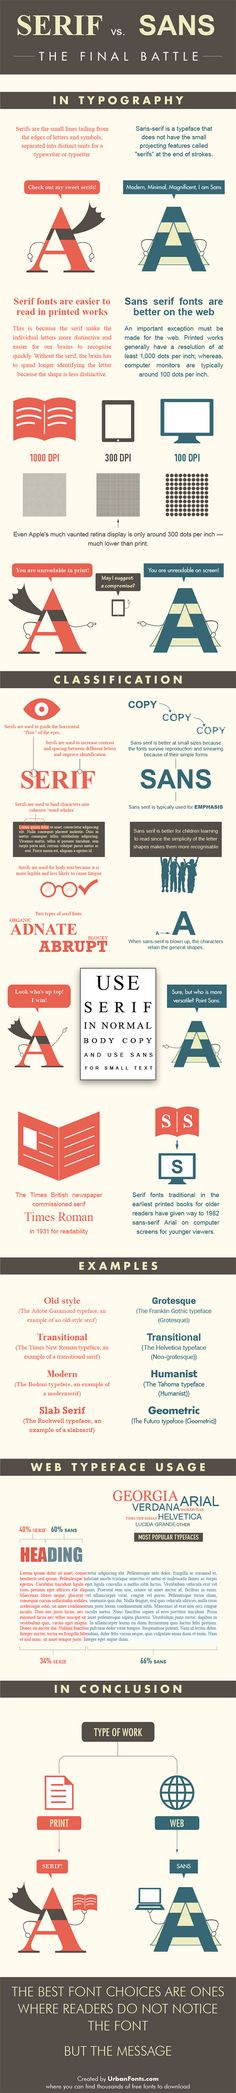 Serif vs Sans: The Final Battle. This infographic explains the differences between serif and sans serif fonts. You'll learn when to use one over the other as well as examples and web usages. Graphisches Design, Graphic Design Tips, Graphic Design Typography, Graphic Design Inspiration, Design Elements, Branding, Architectural Font, Graphics, Infographic